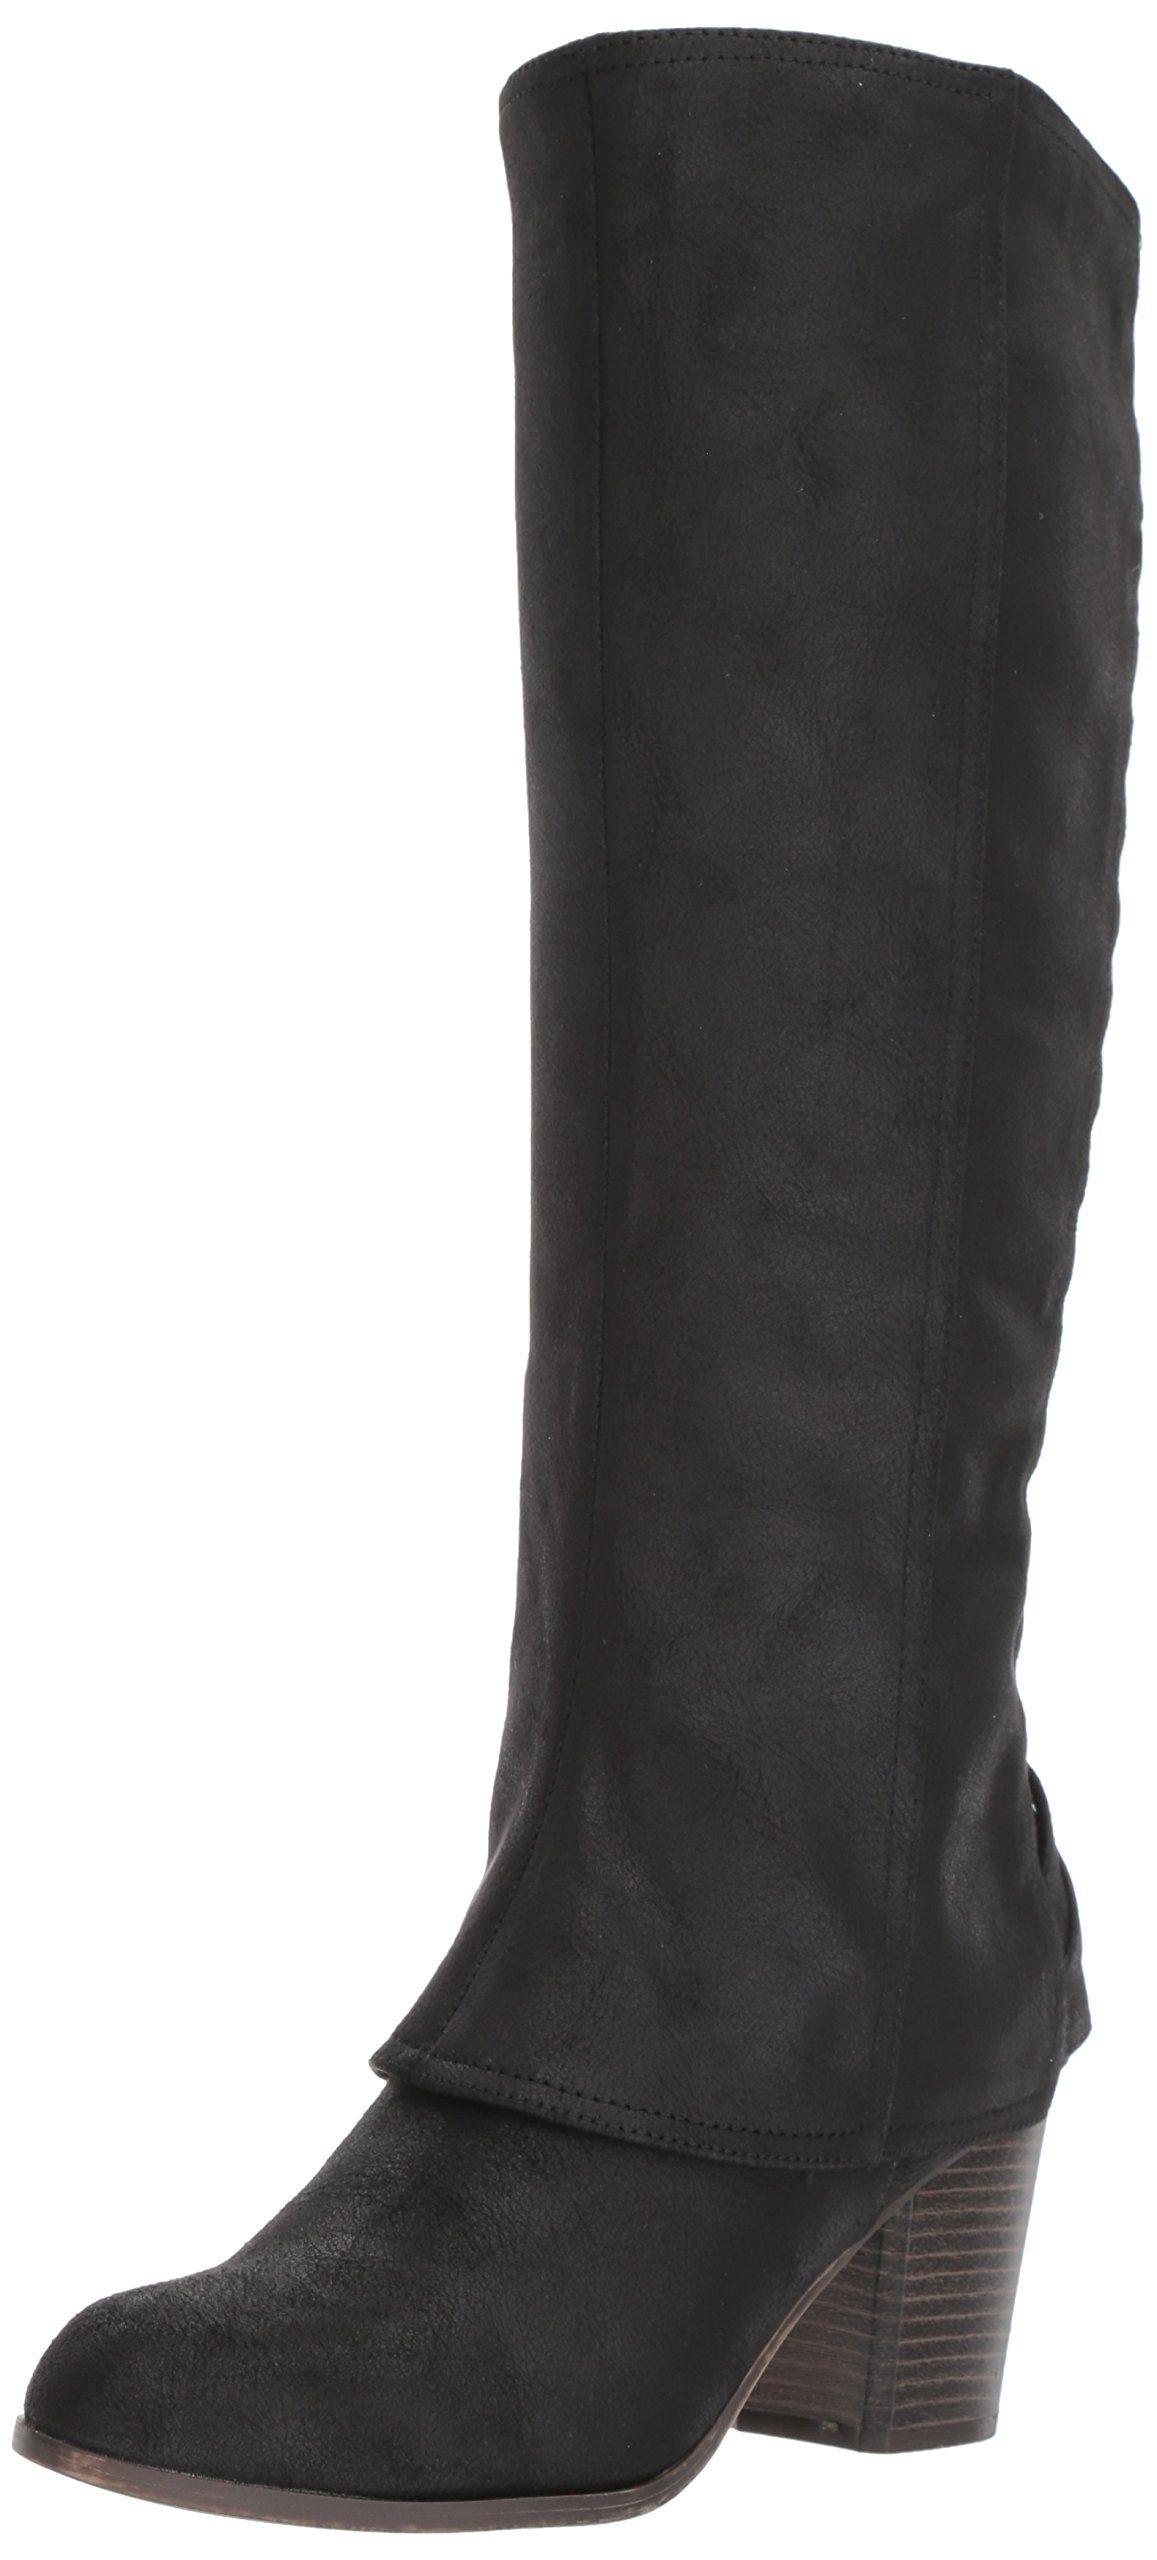 Fergalicious Women's Tootsie Knee High Boot, Black, 8.5 M US